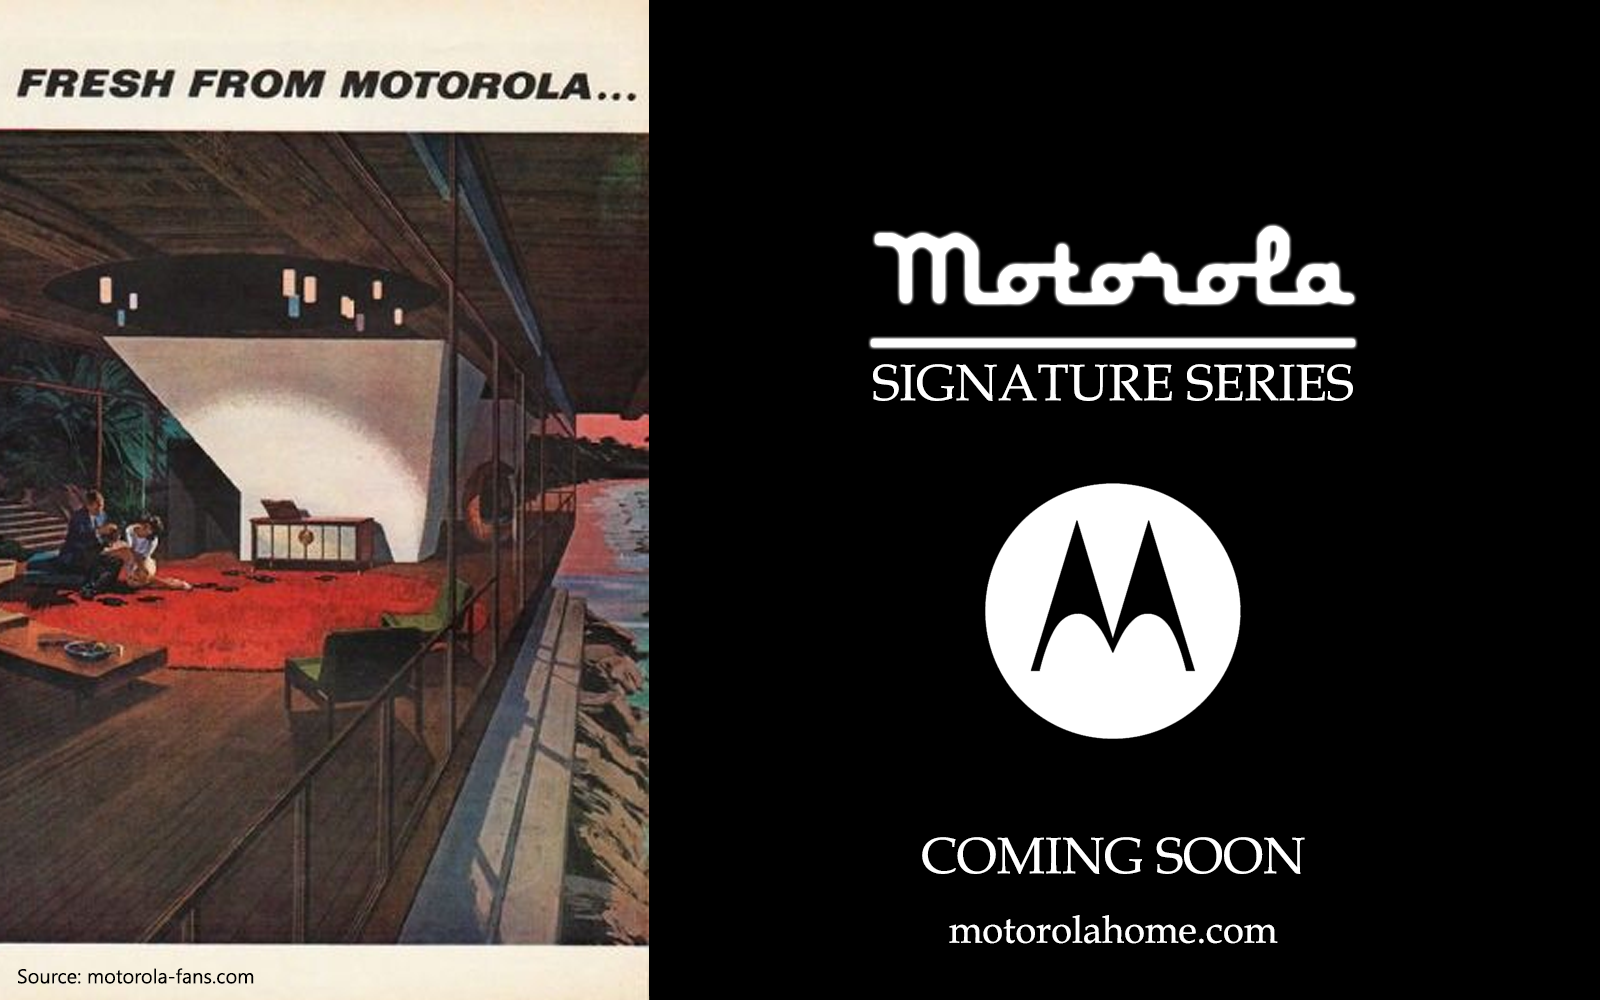 Motorola Signature Series